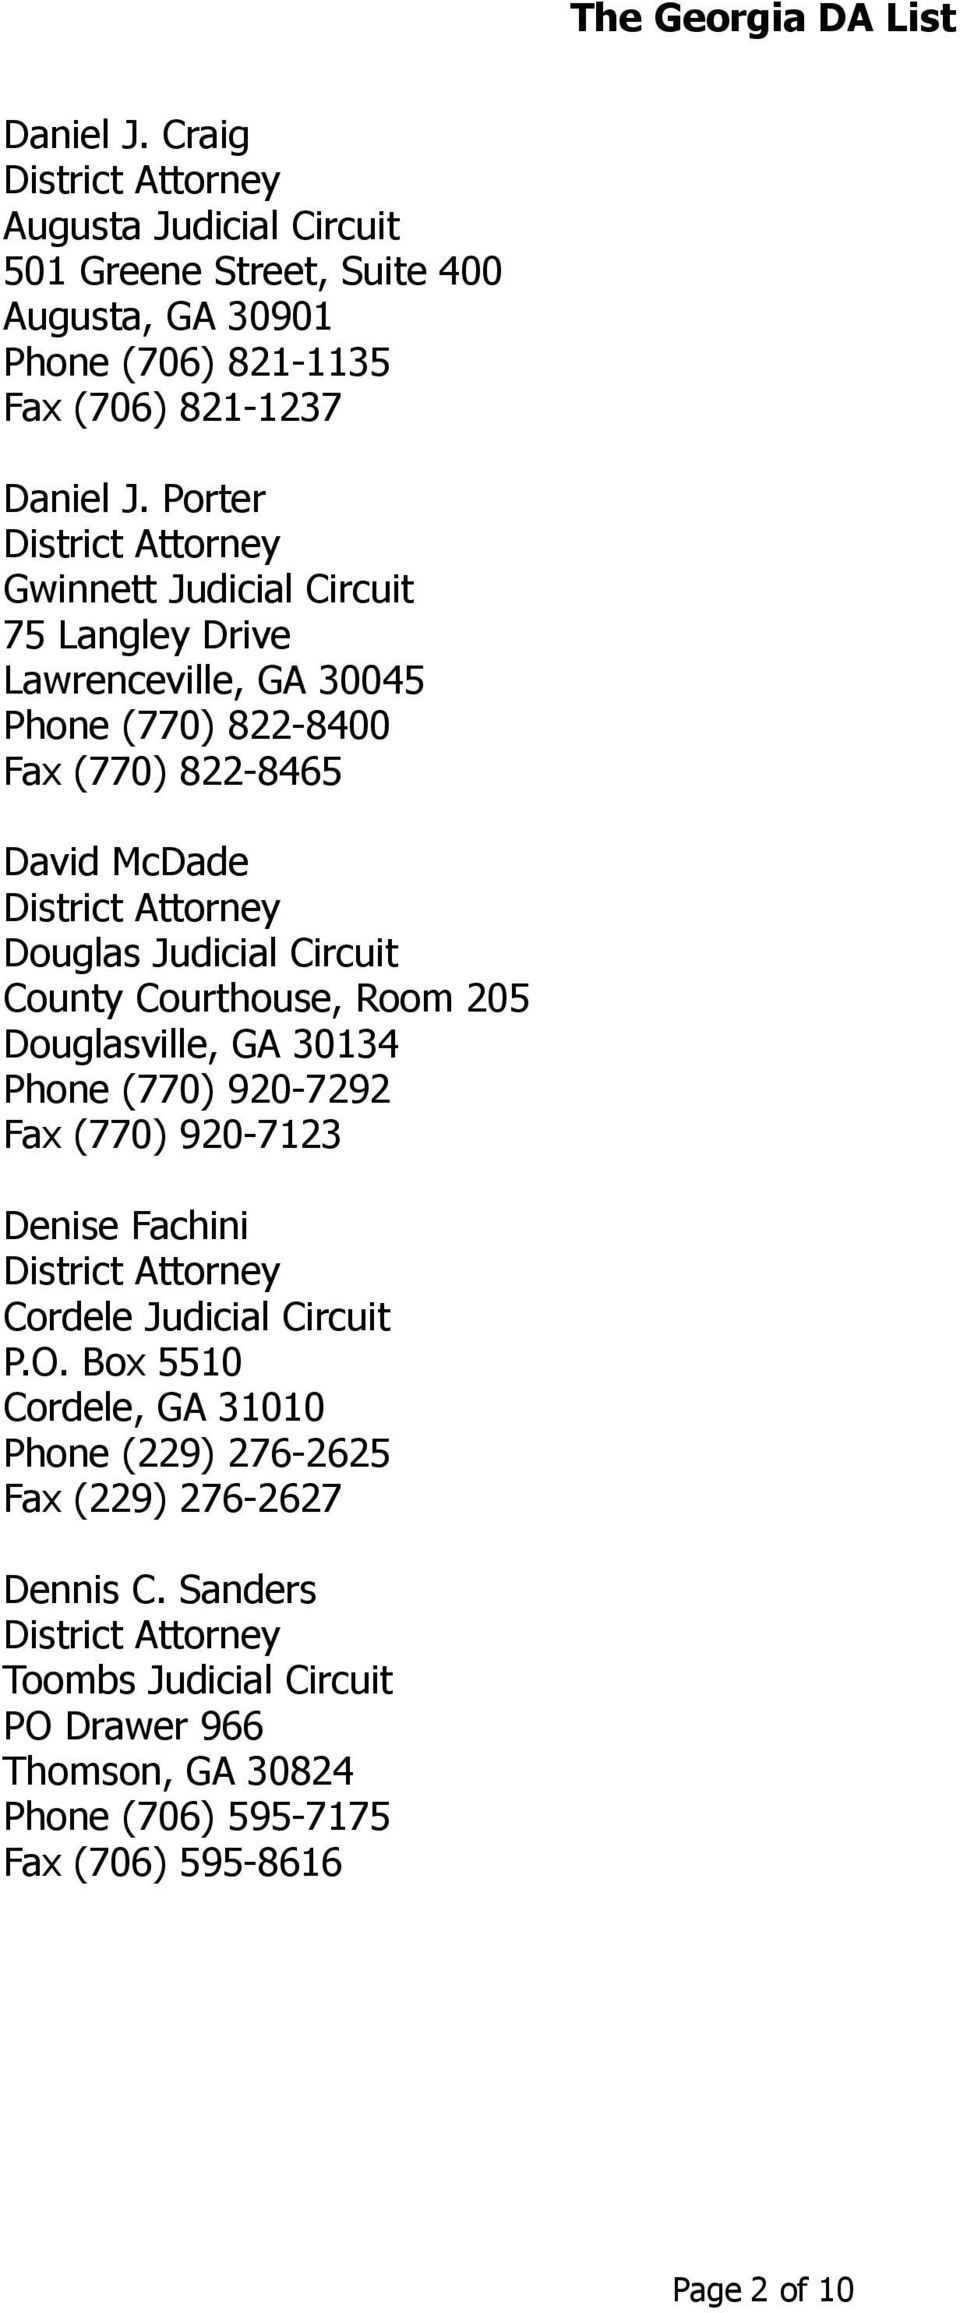 County Courthouse, Room 205 Douglasville, GA 30134 Phone (770) 920-7292 Fax (770) 920-7123 Denise Fachini Cordele Judicial Circuit P.O.